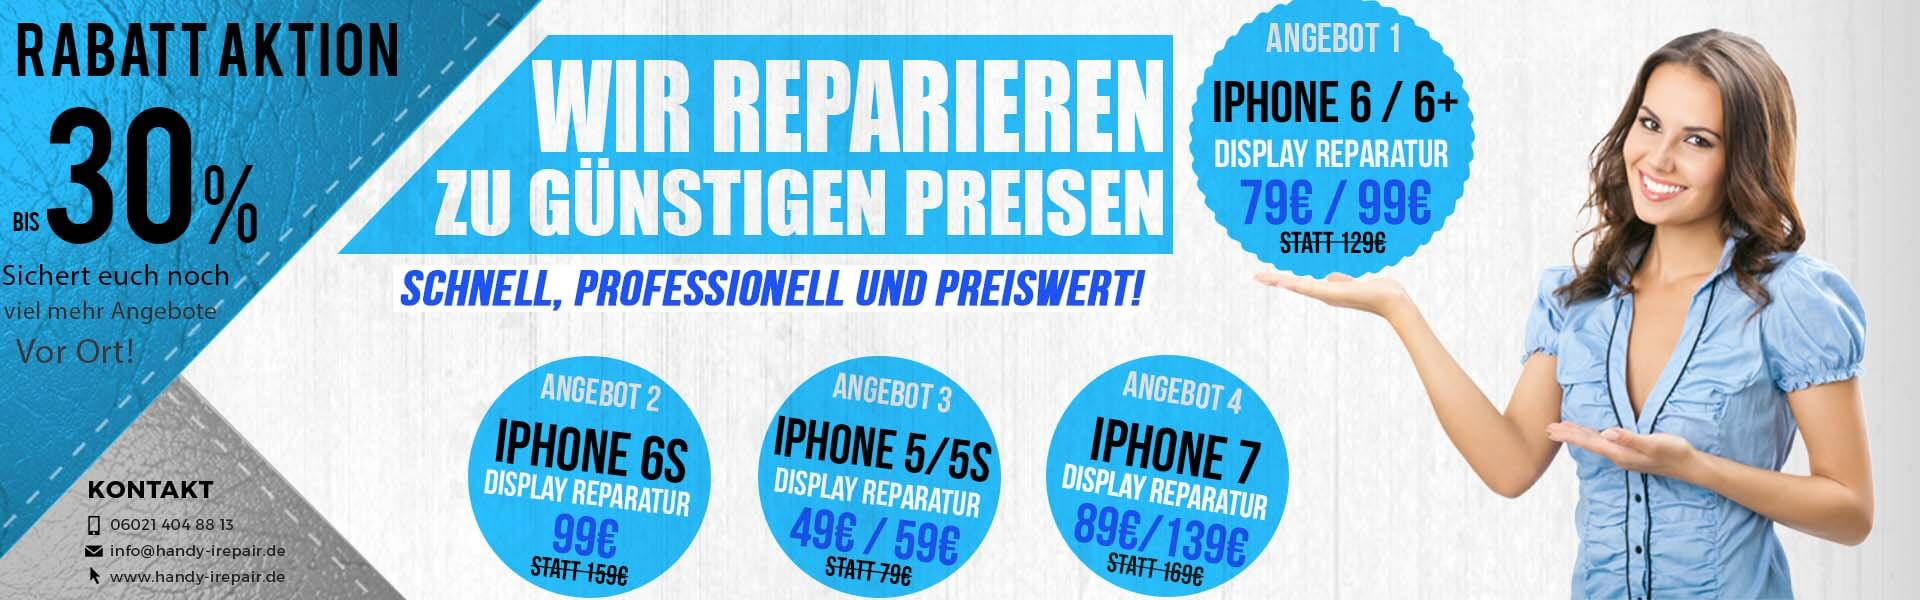 iPhone Display Reparatur - Rabatt Aktions Preise